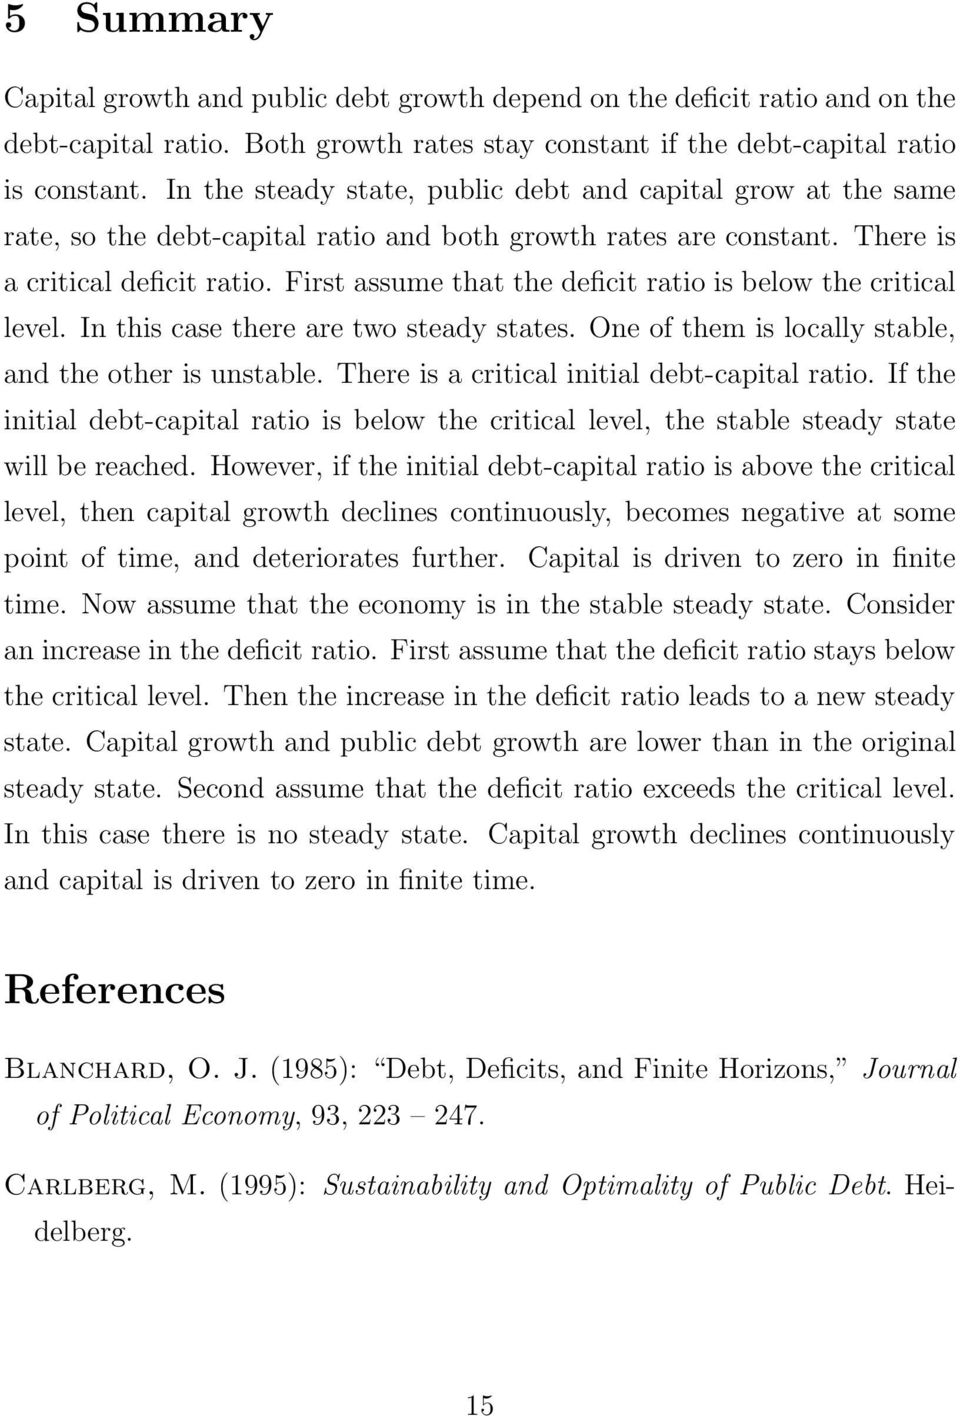 First assume that the deficit ratio is below the critical level. In this case there are two steady states. One of them is locally stable, and the other is unstable.